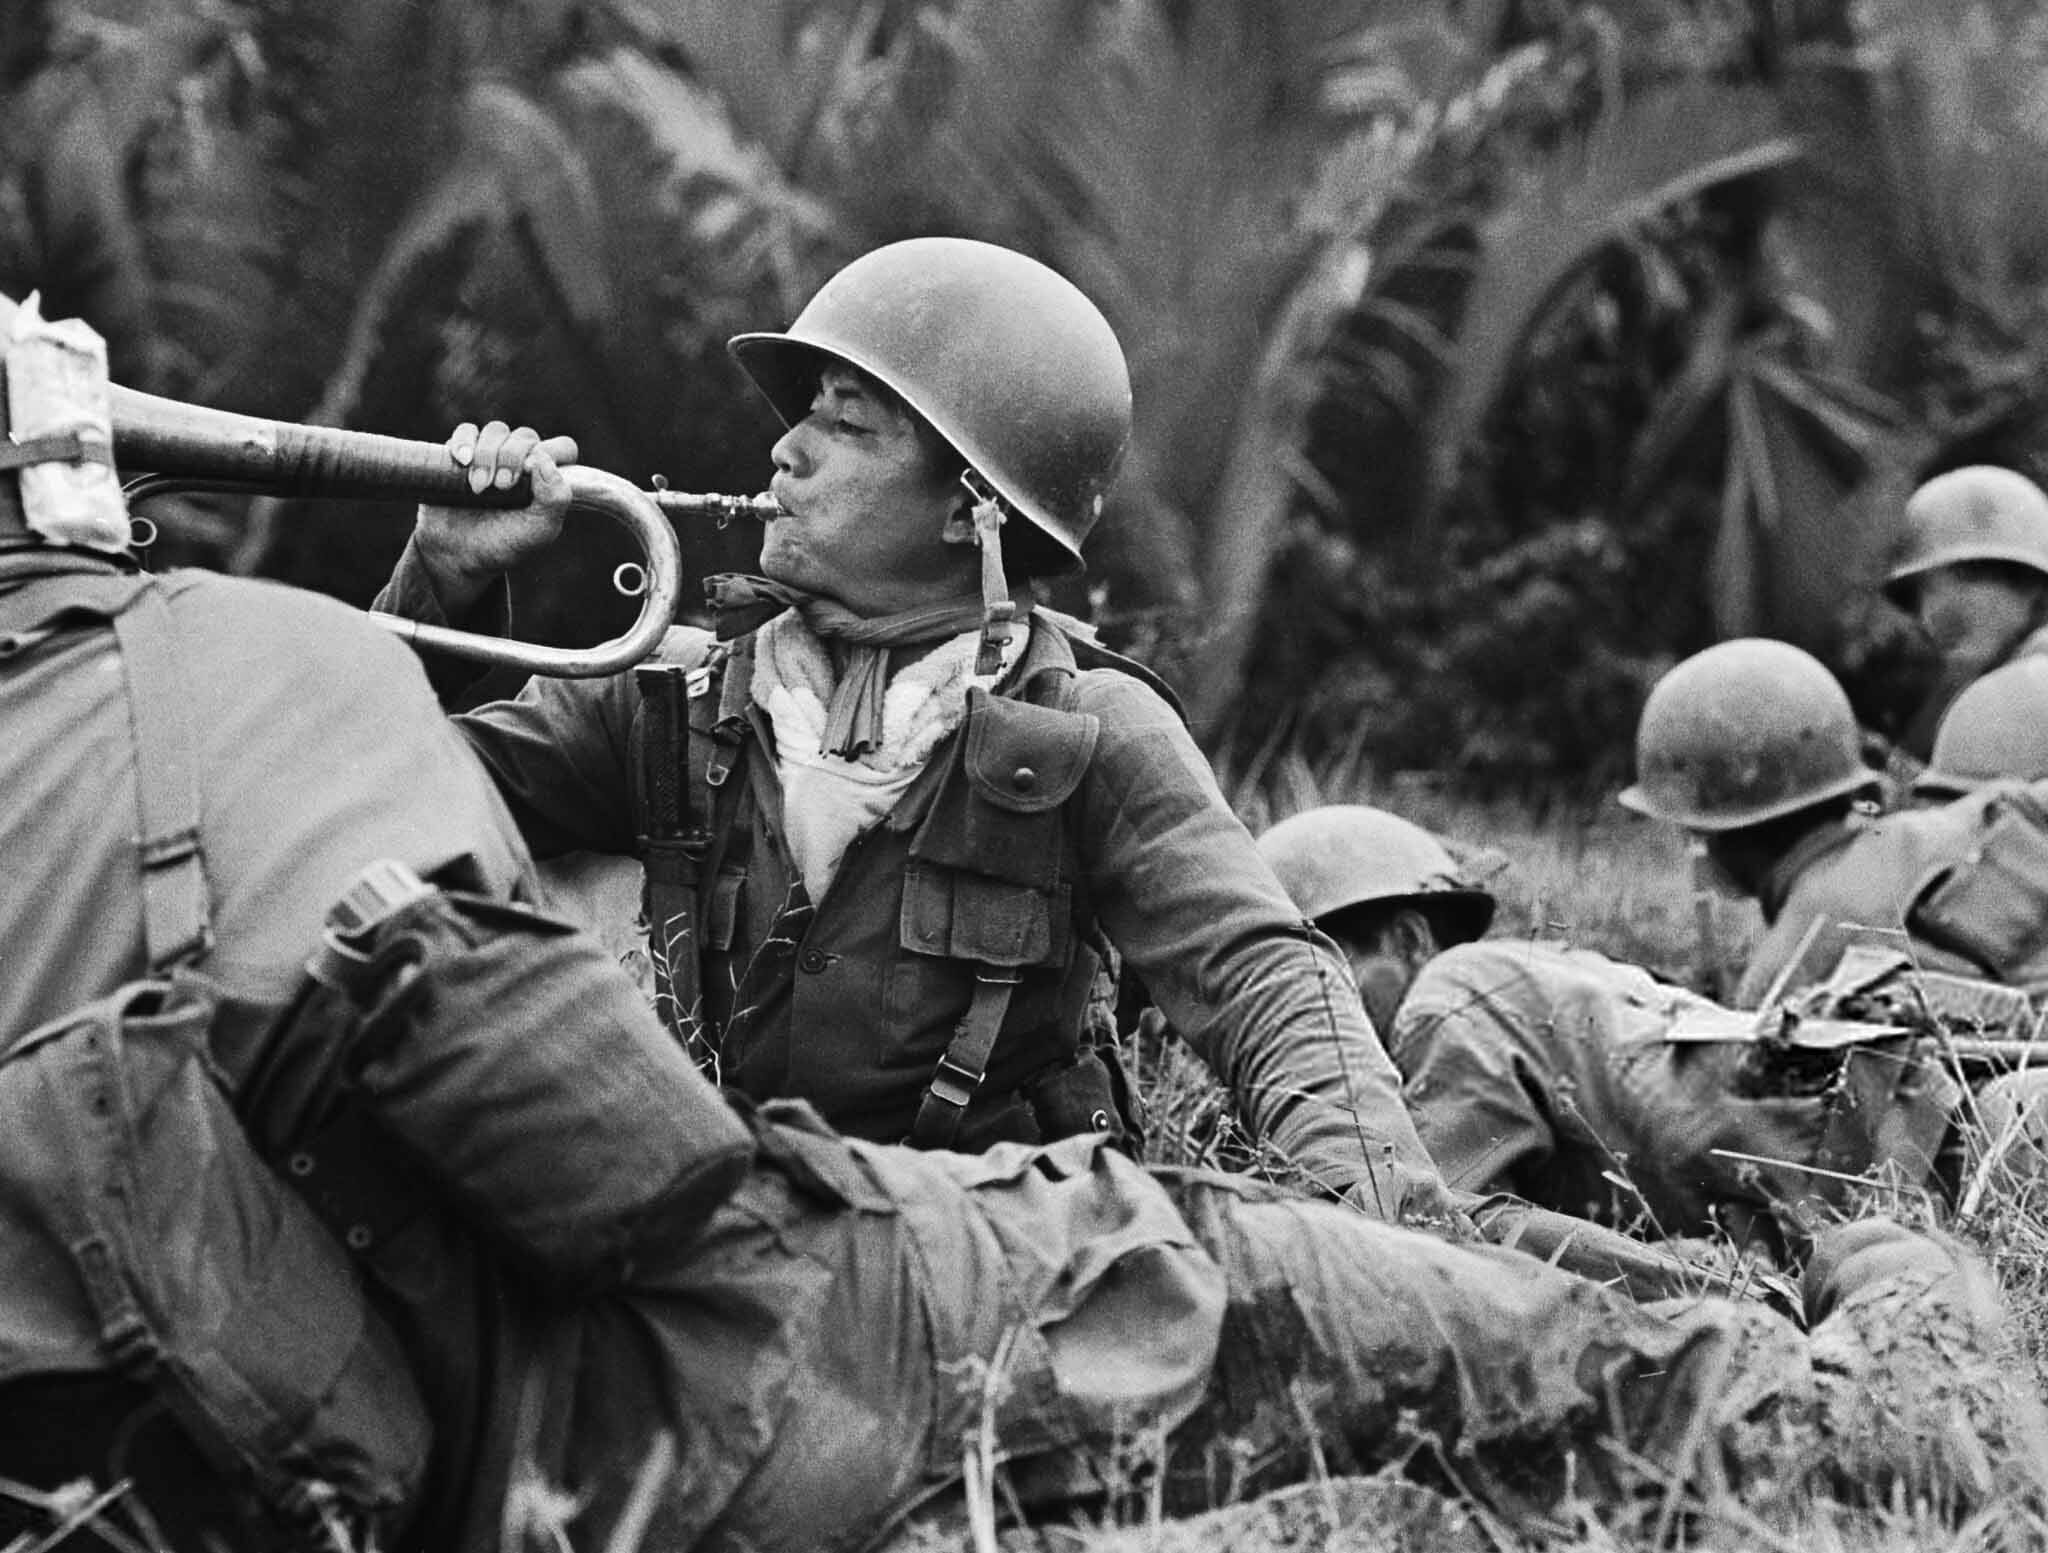 Vietnamese Bugler Sounds Call For Charge Vietnam